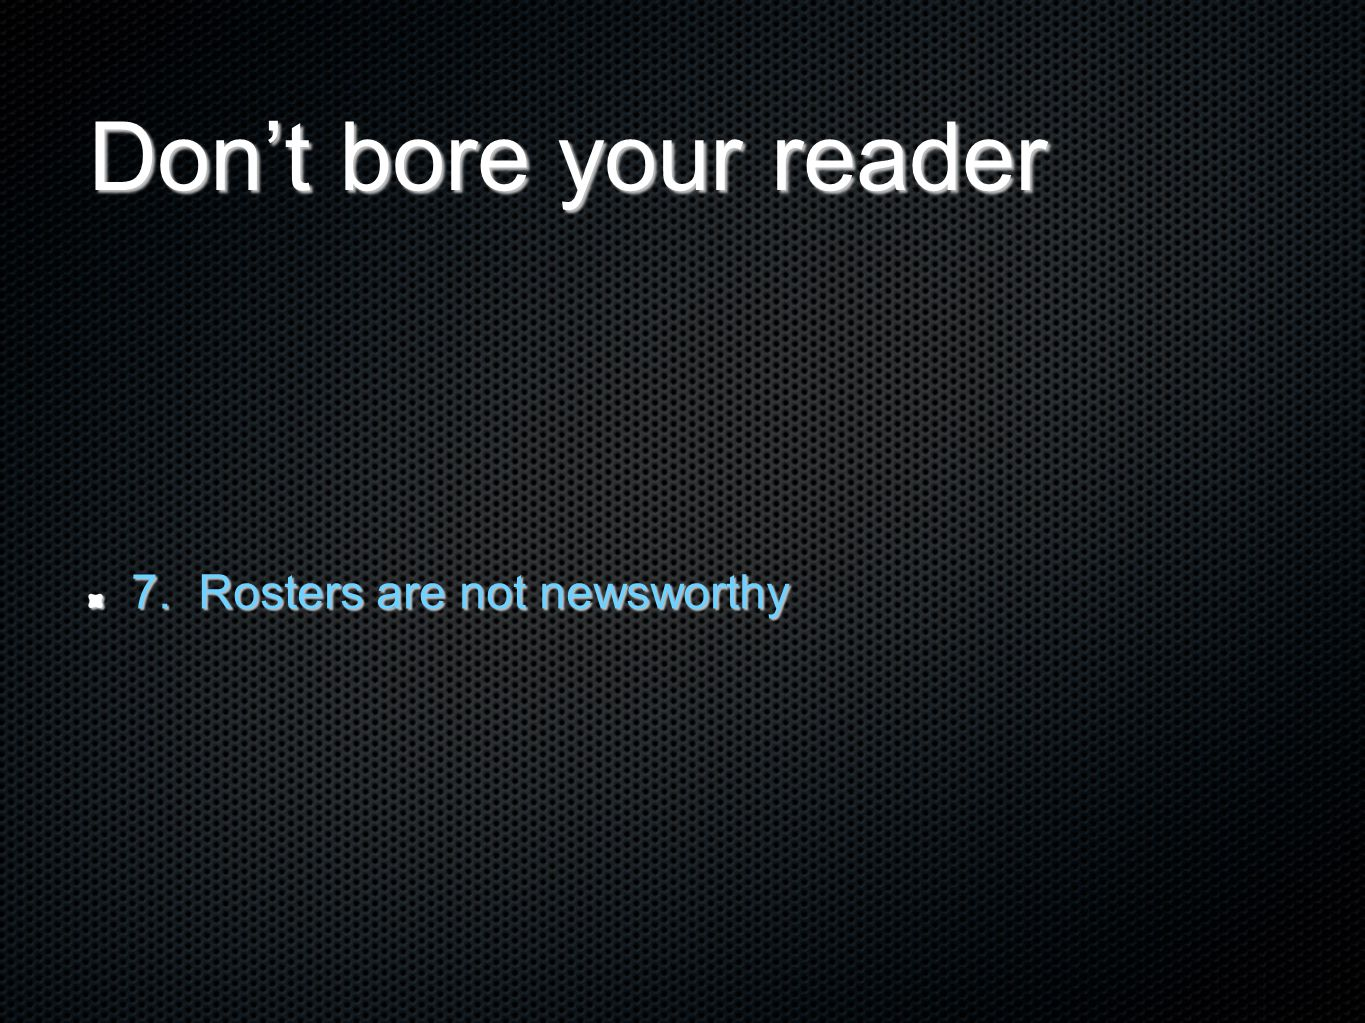 Don't bore your reader 7. Rosters are not newsworthy